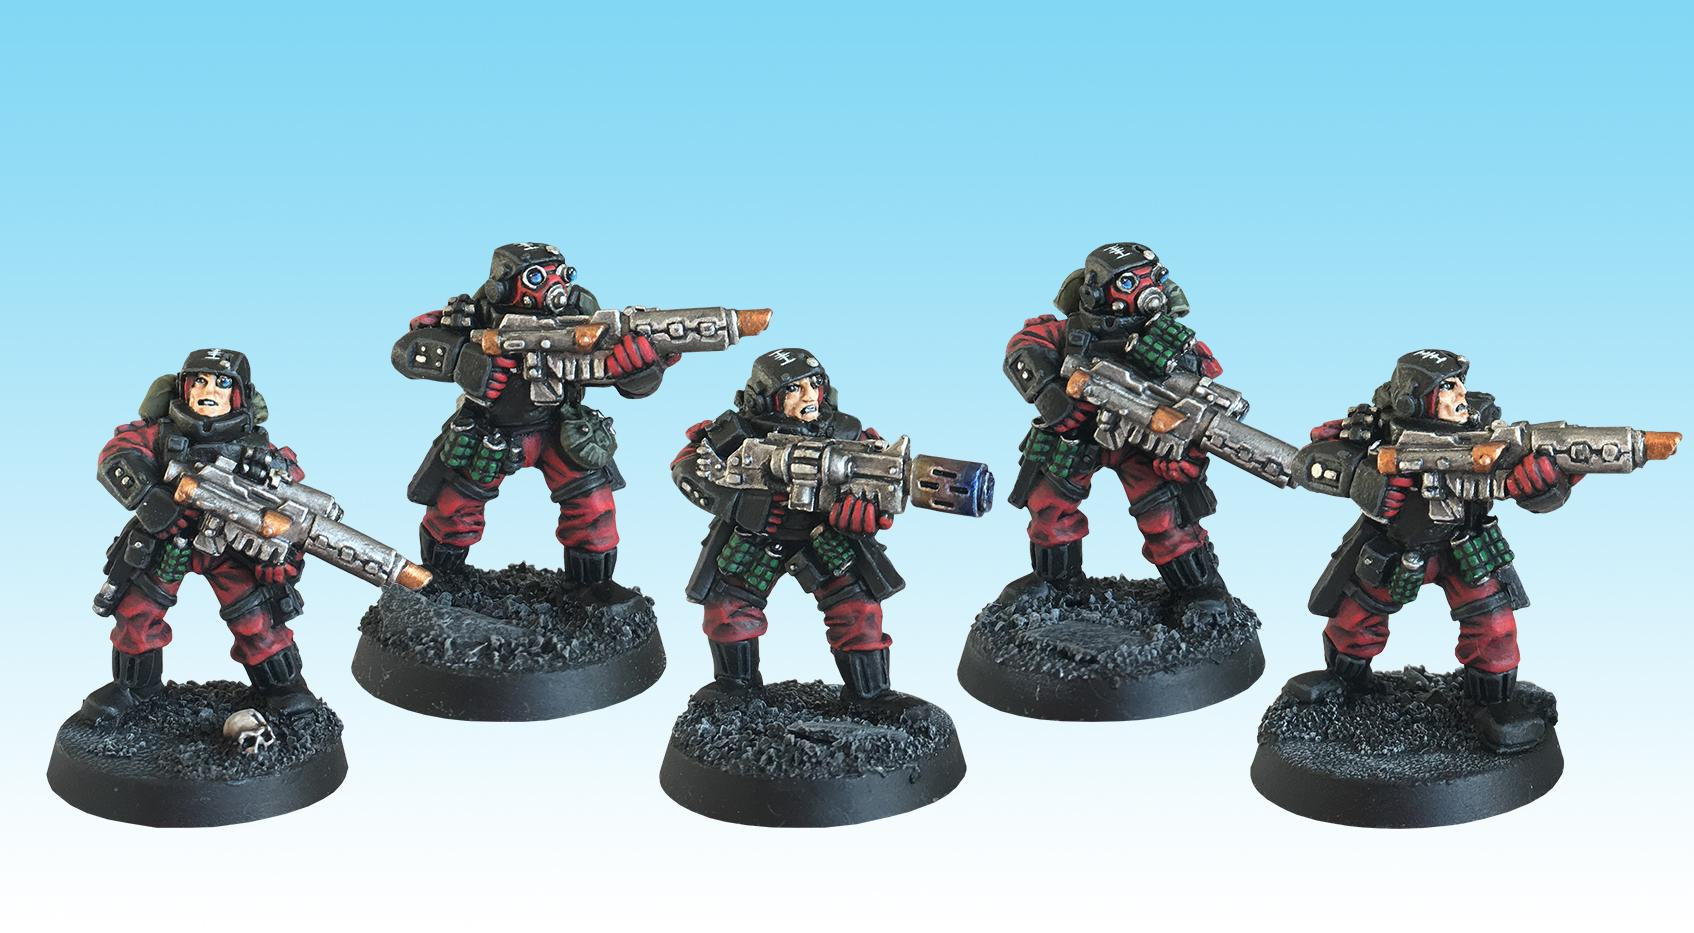 Adepta Sororitas, Inquisition, Inquisitorial, Old Hammer, Order Of Our Martyred Lady, Painted, Sisters Of Battle, Squad, Storm Troopers, Warhammer 40,000